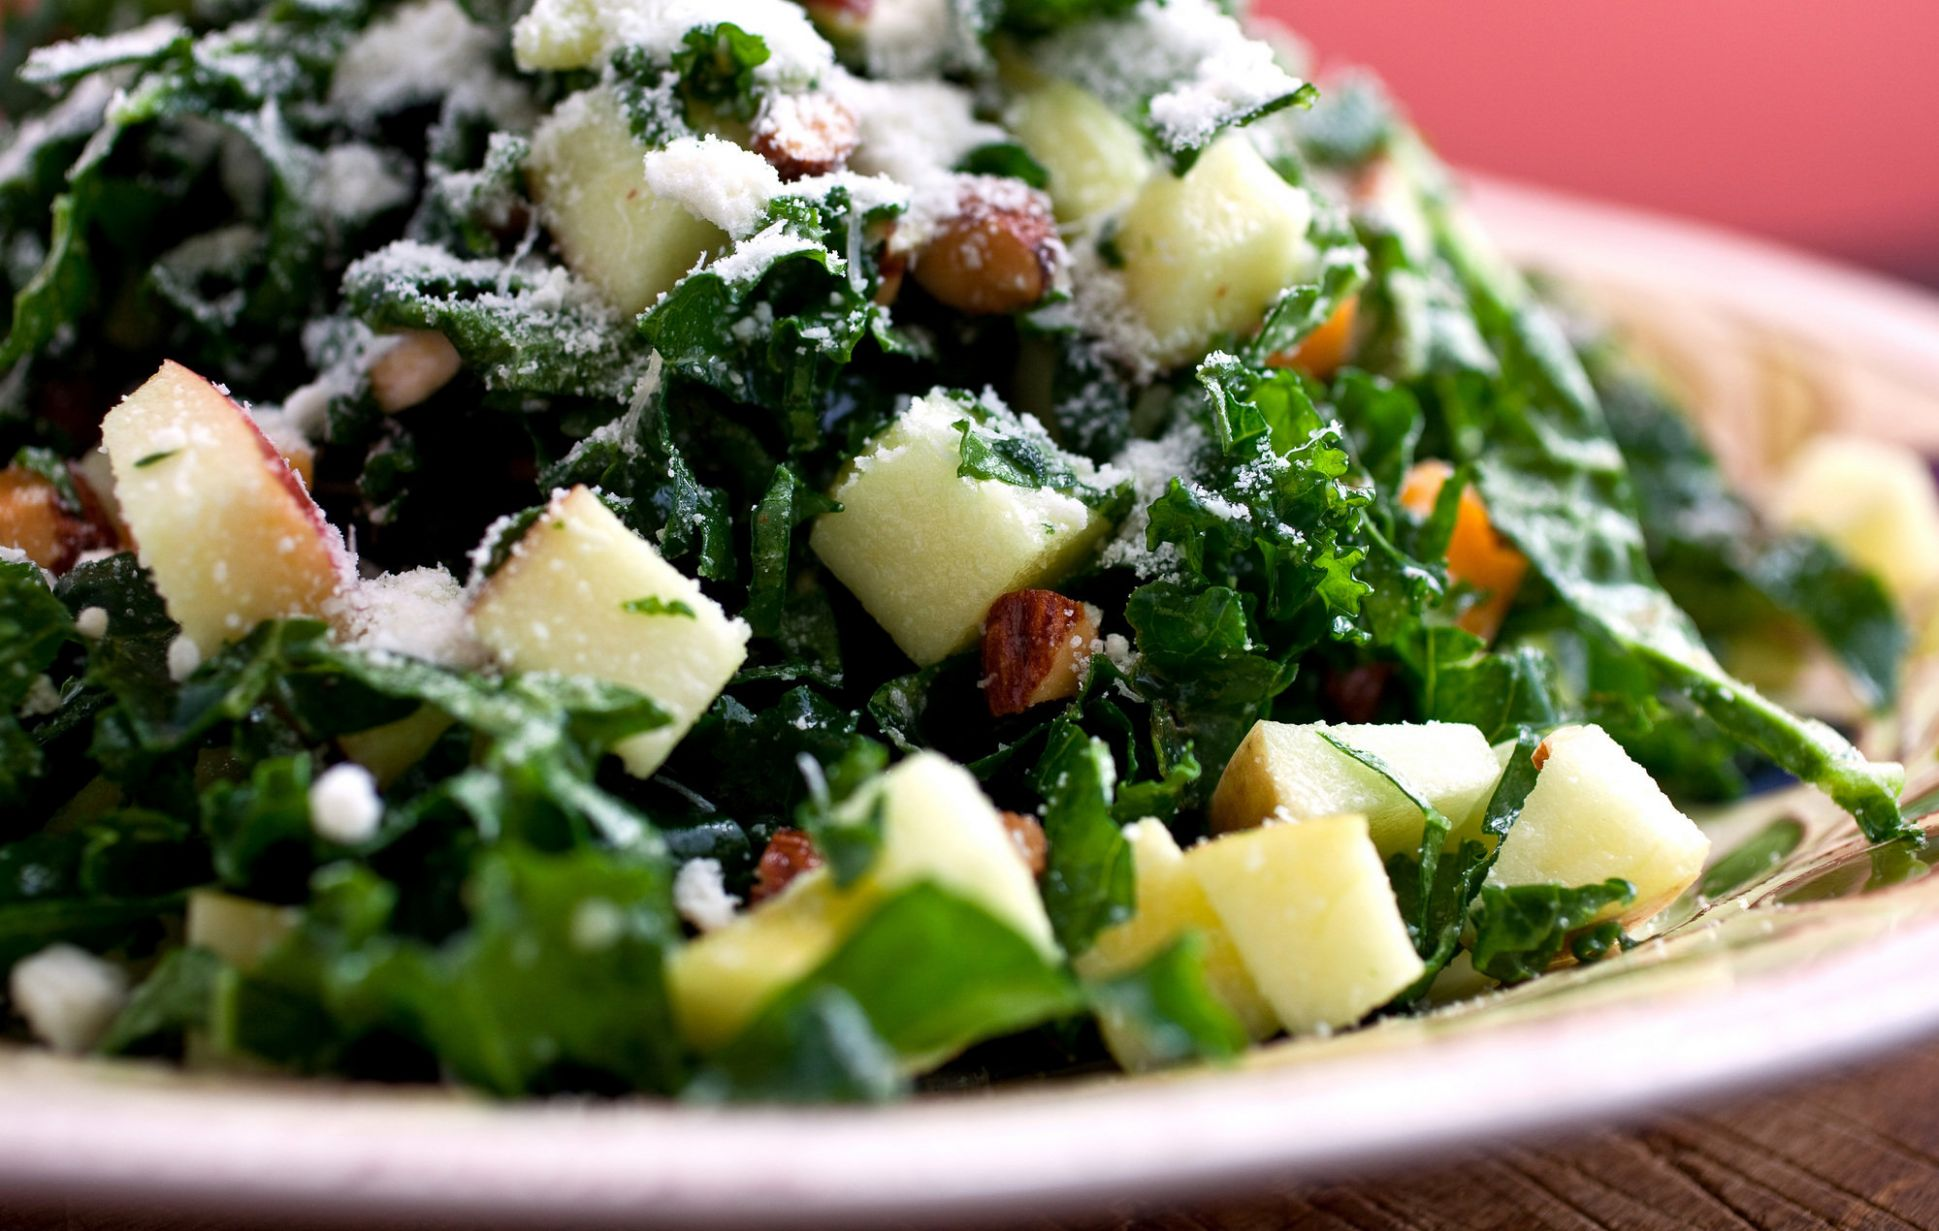 Kale Salad With Apples, Cheddar and Toasted Almonds or Pine Nuts ...